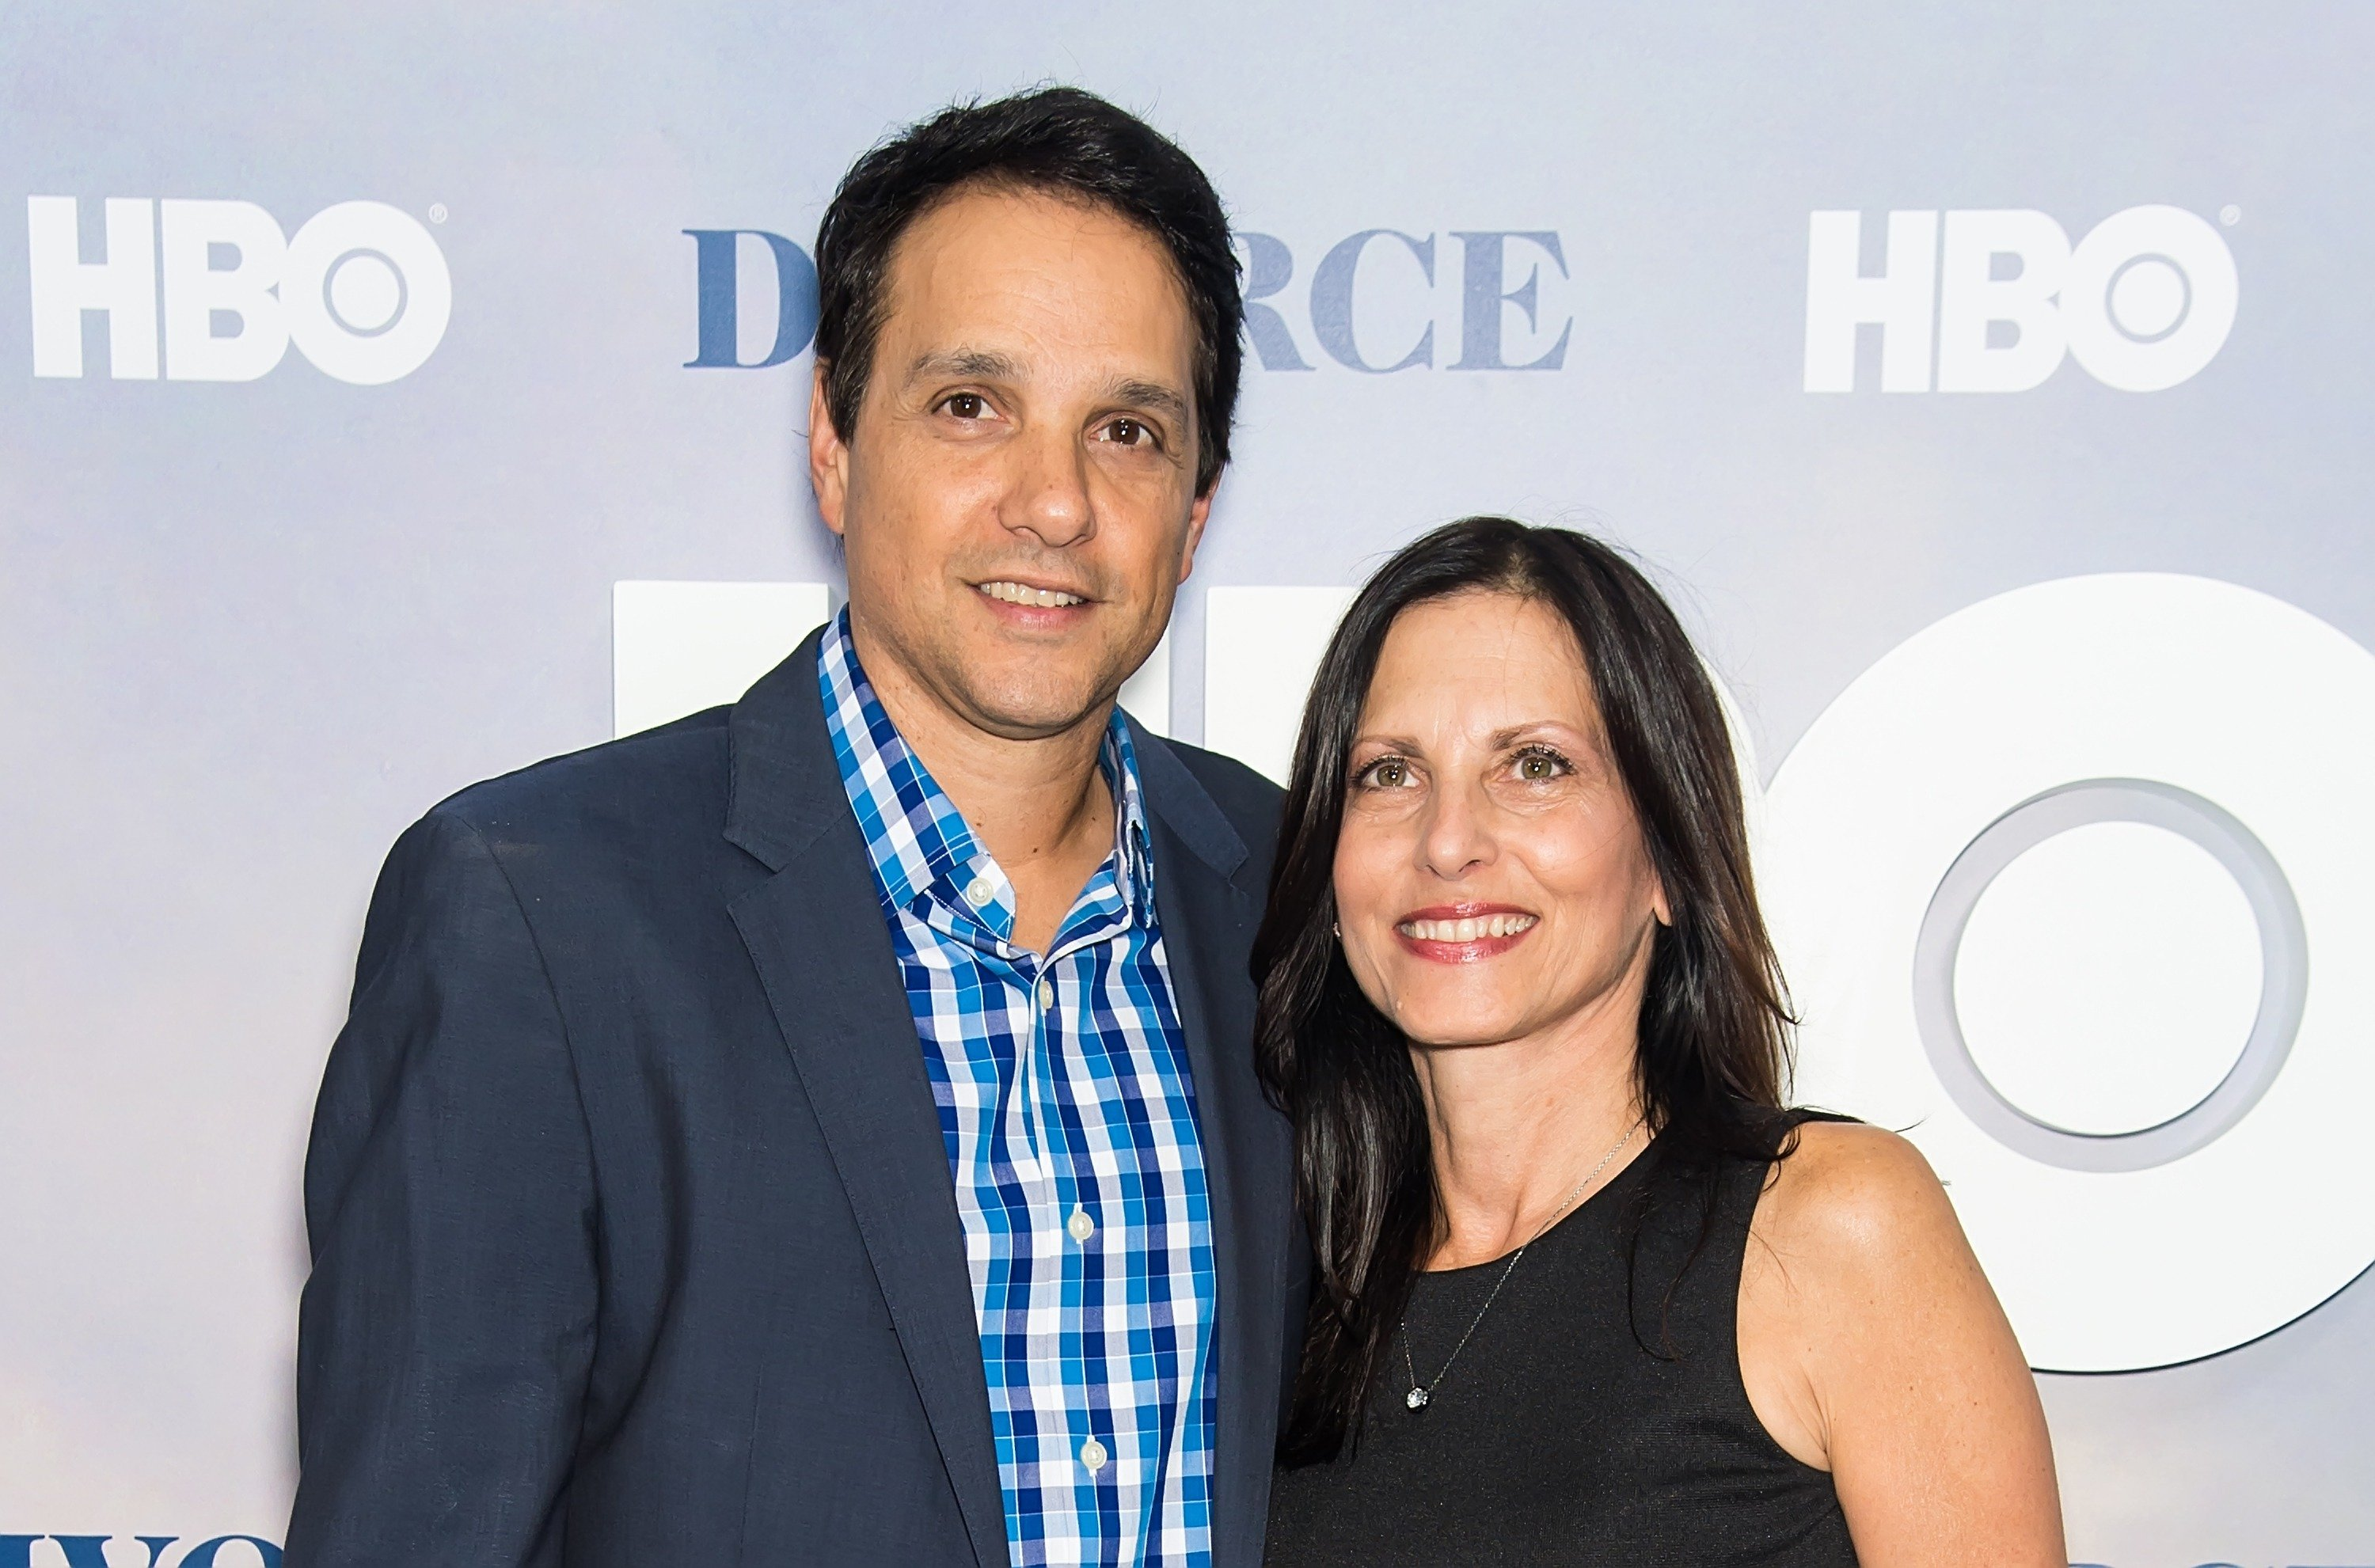 Image Credit: Getty Images/FilmMagic/Gilbert Carrasquillo |  Ralph Macchio and wife, Nurse practitioner, Phyllis Fierro attend the 'Divorce' New York Premiere